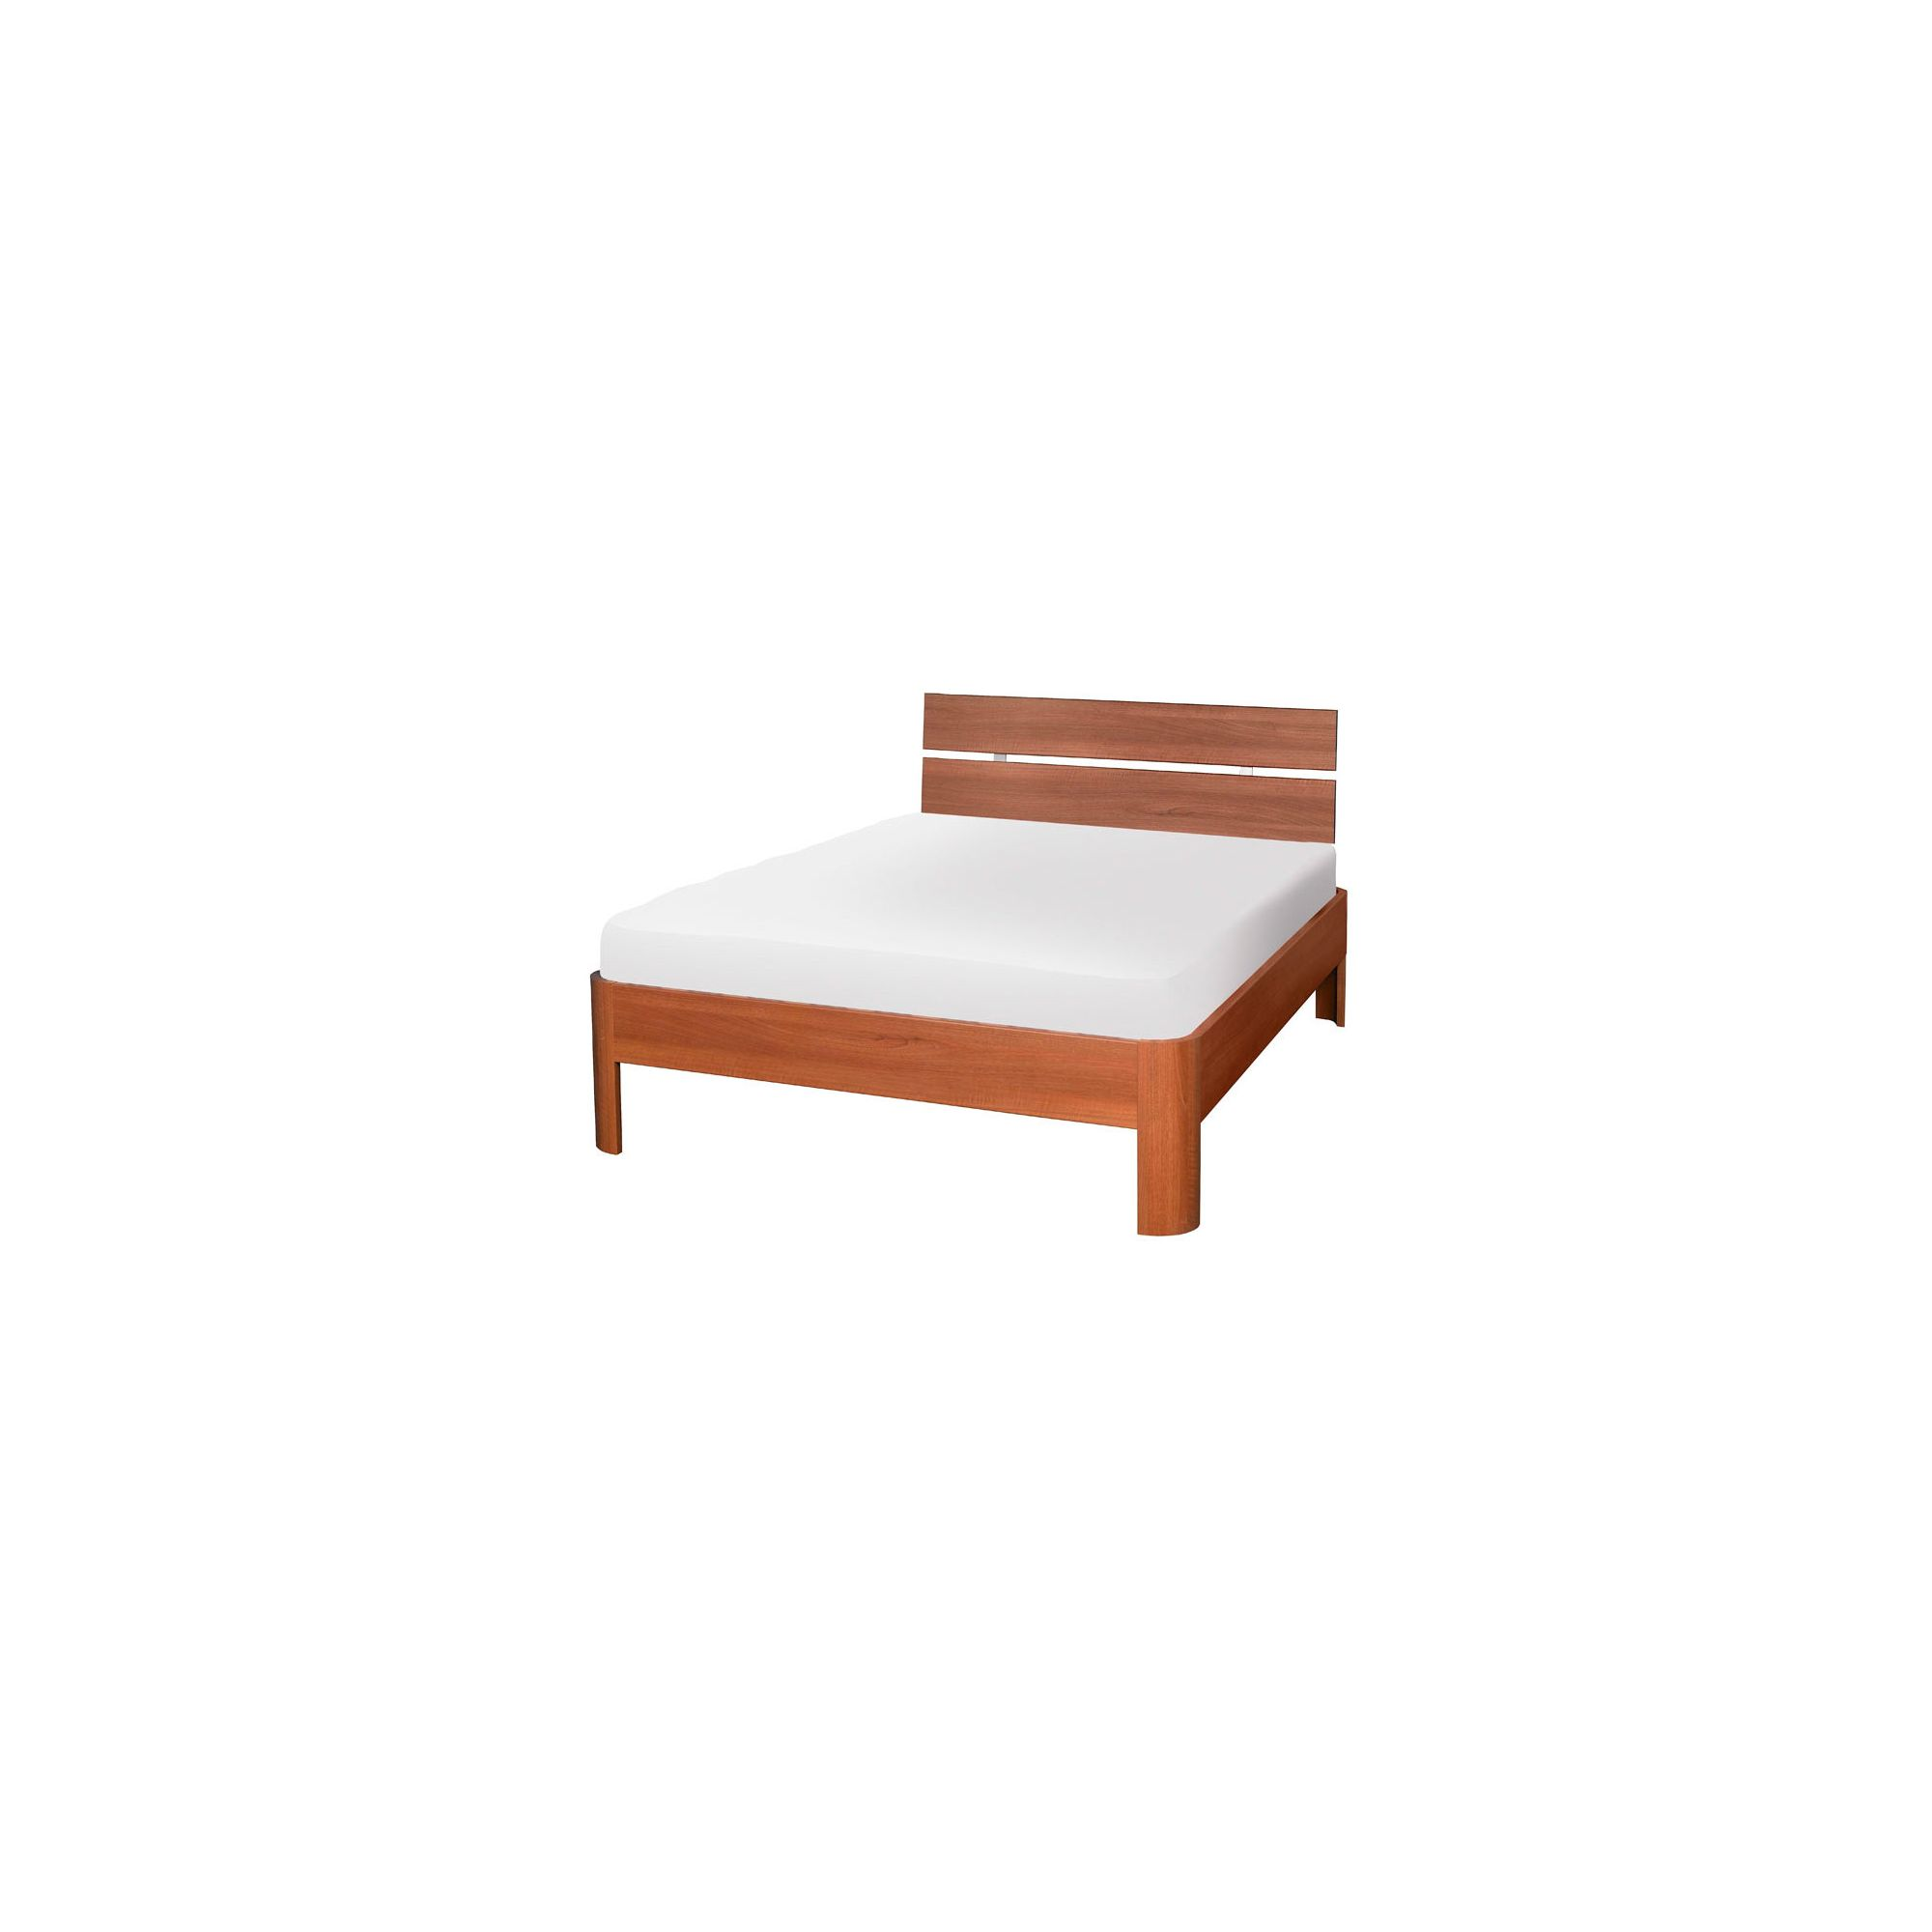 Alto Furniture Visualise Alive Bed Frame - Double at Tesco Direct